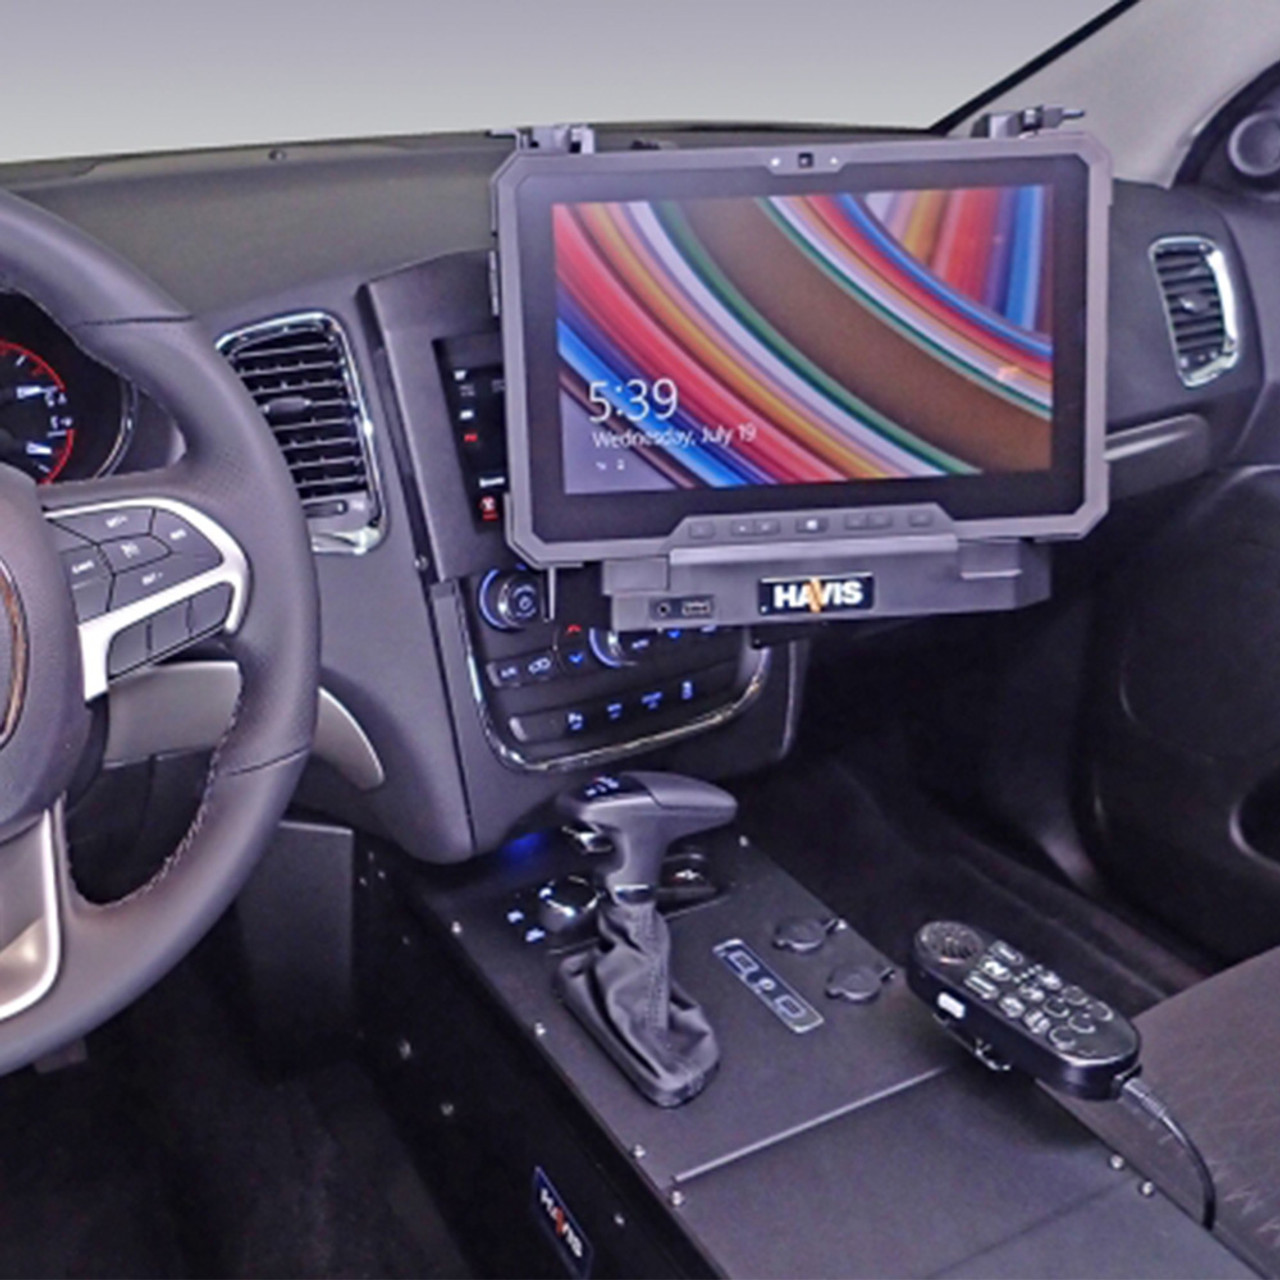 Havis C Dmm 3004 Dash Swing Out Monitor Or Tablet Mount For 2014 2019 Dodge Durango